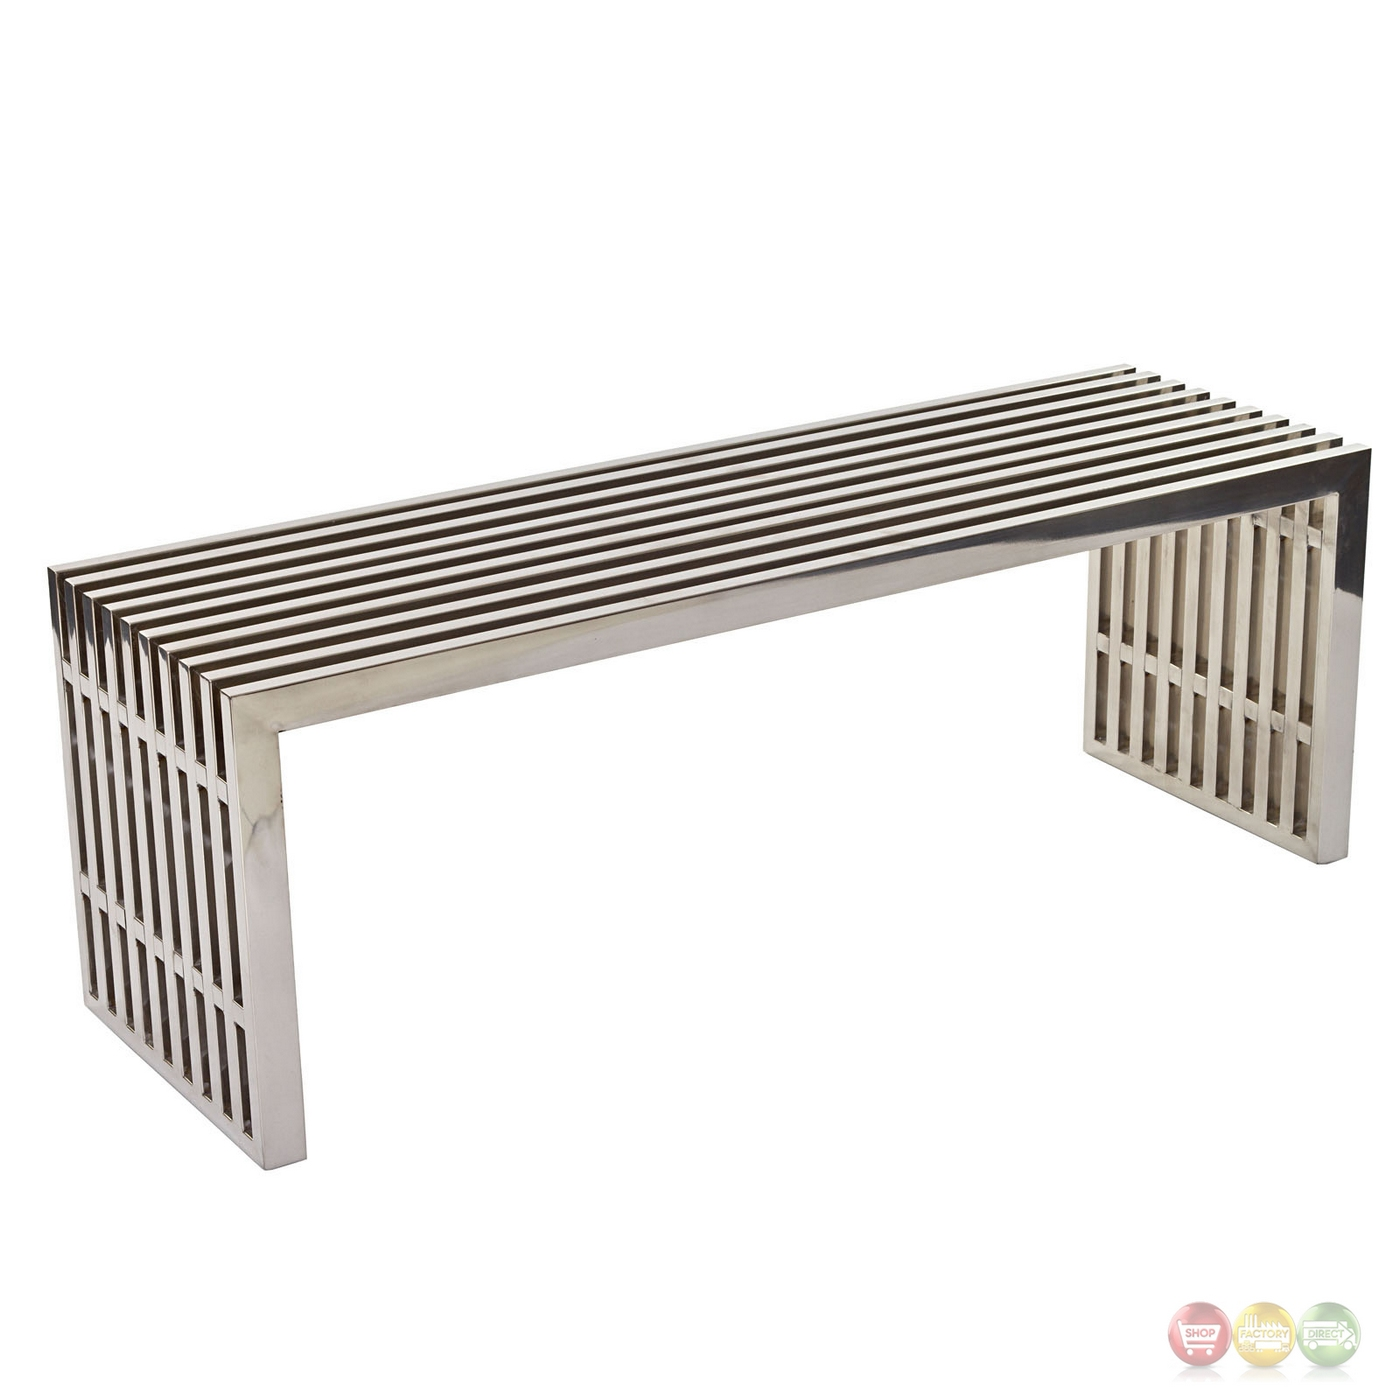 Gridiron Contemporary Medium Stainless Steel Slatted Bench Silver